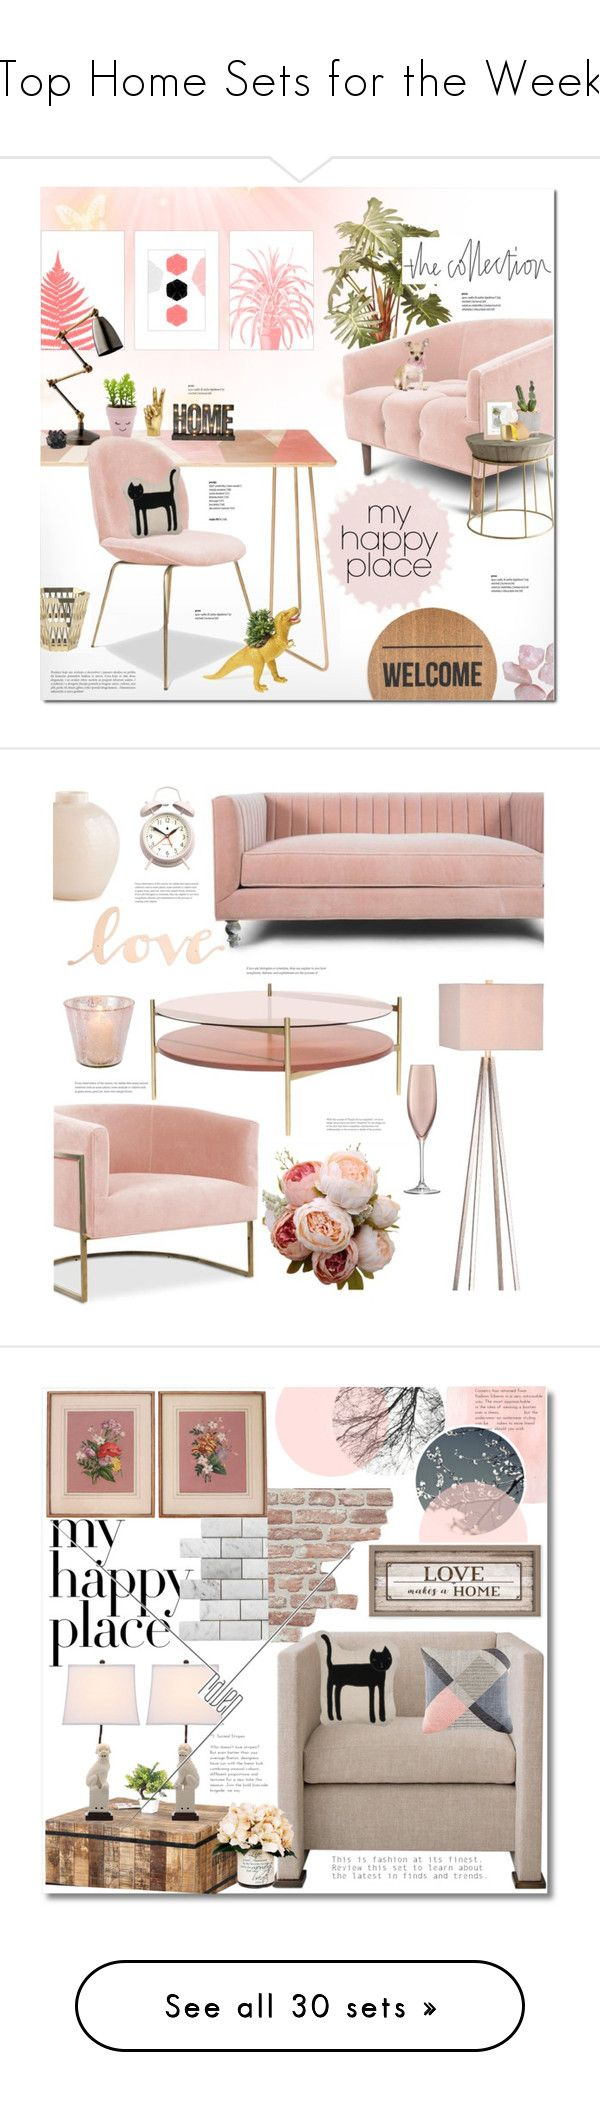 top home sets for the week by polyvore liked on polyvore featuring interior - Cyan Home Interior